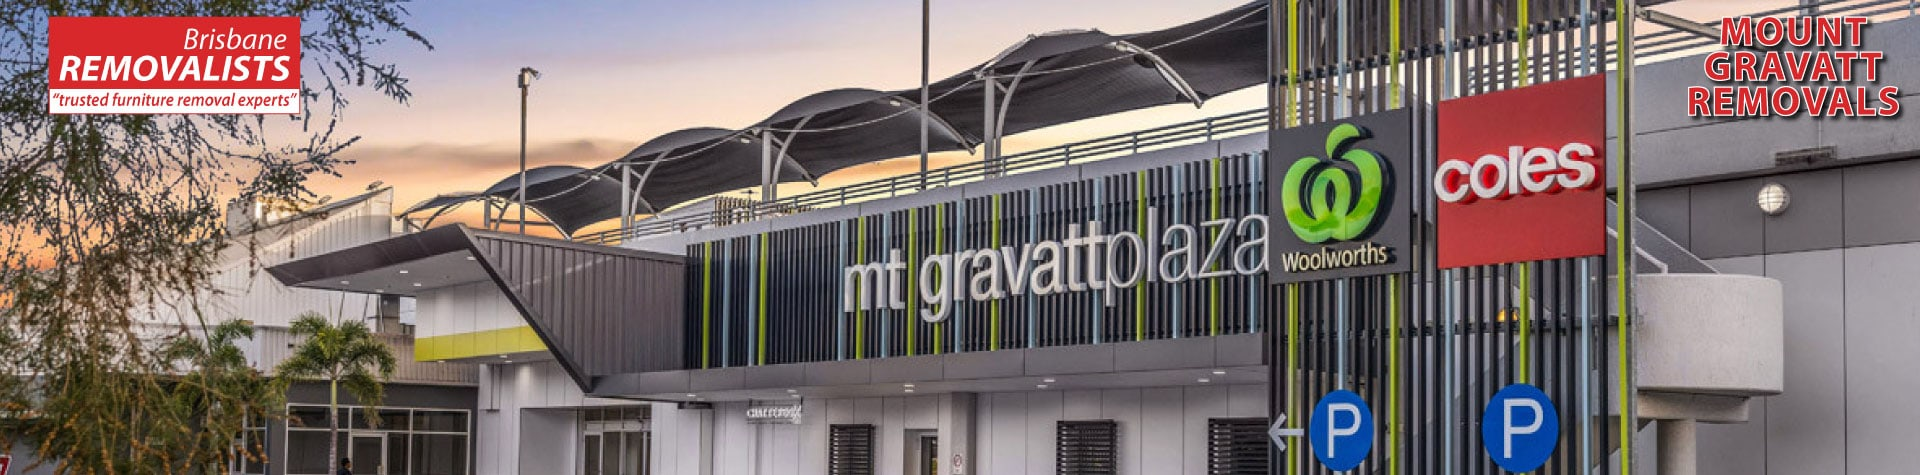 Mount Gravatt Removal Services image of Mt Gravatt Plaza